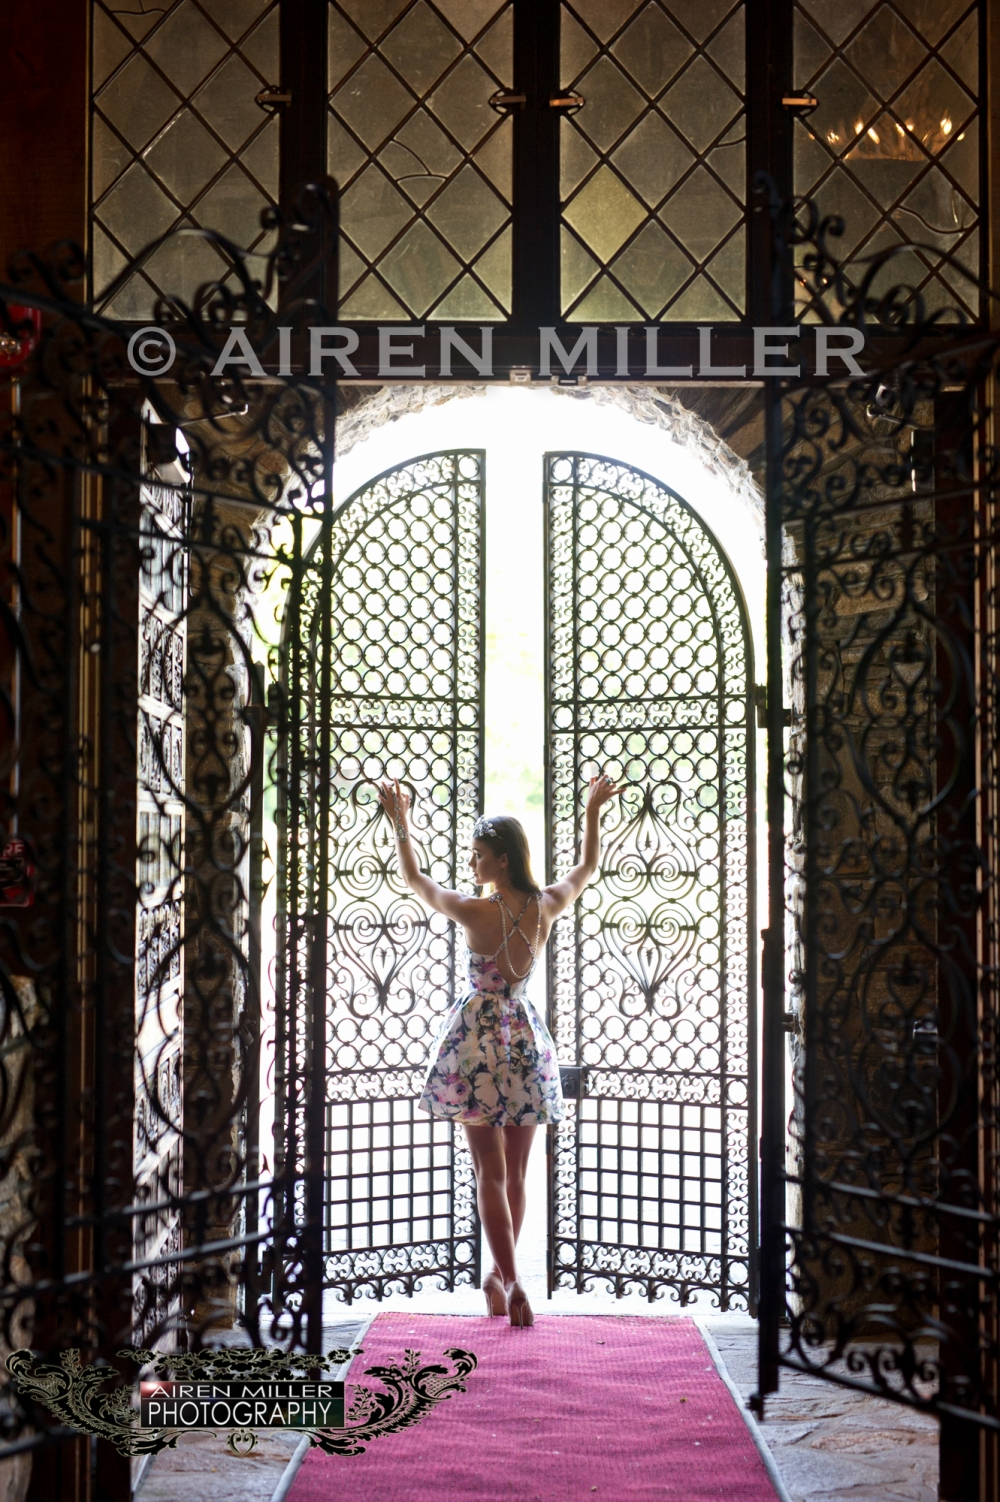 CT-PHOTOGRAPHERS-AIREN-MILLER-0003